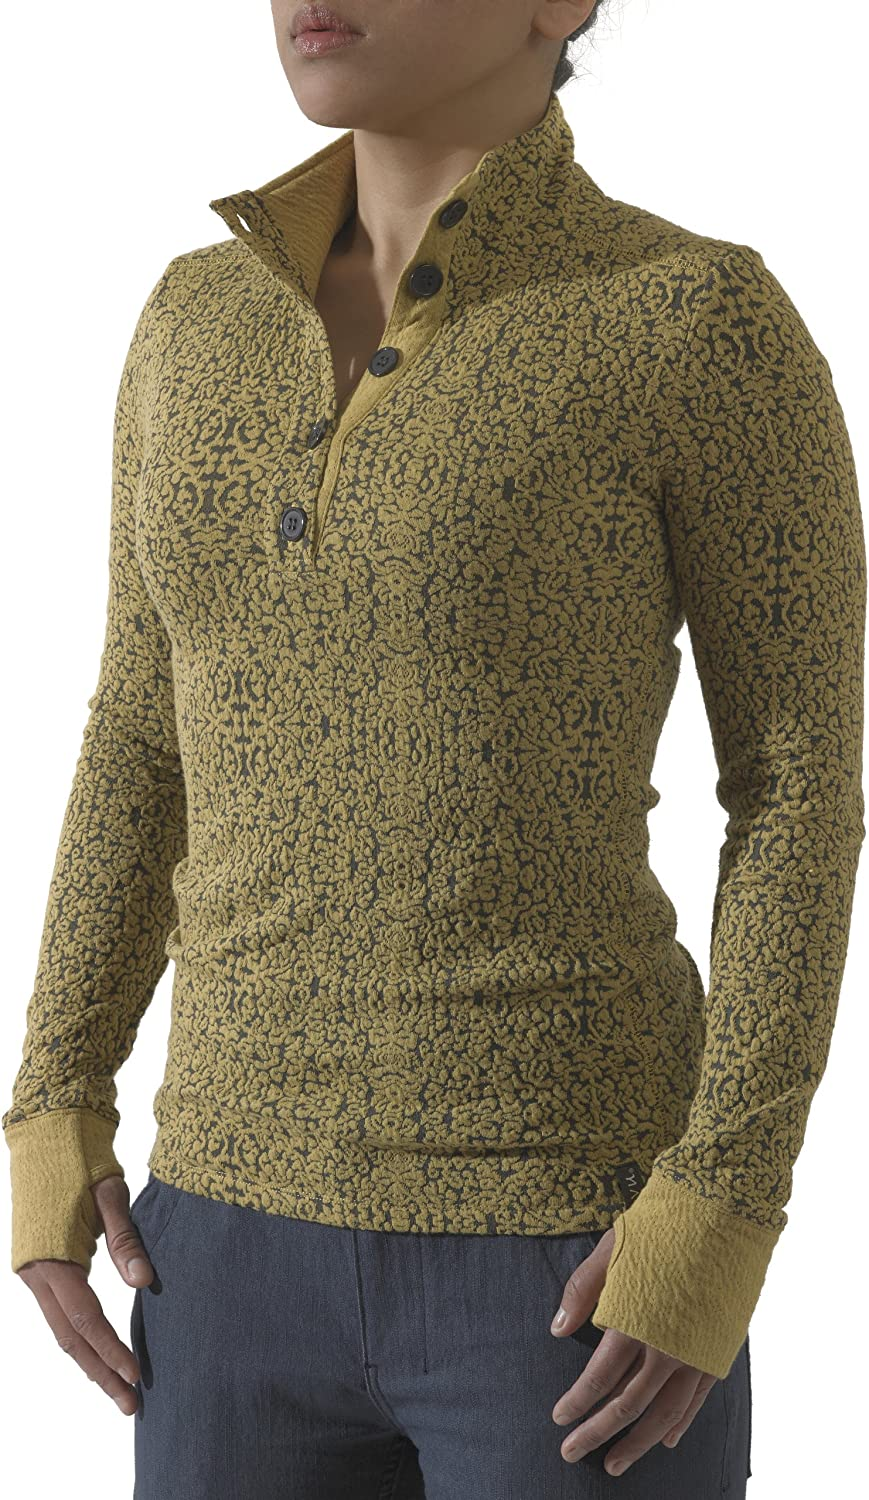 KAVU Lopez Spandex Button Up - Yoga Crew Outdoors Sweater Neck Year-end annual account Popularity